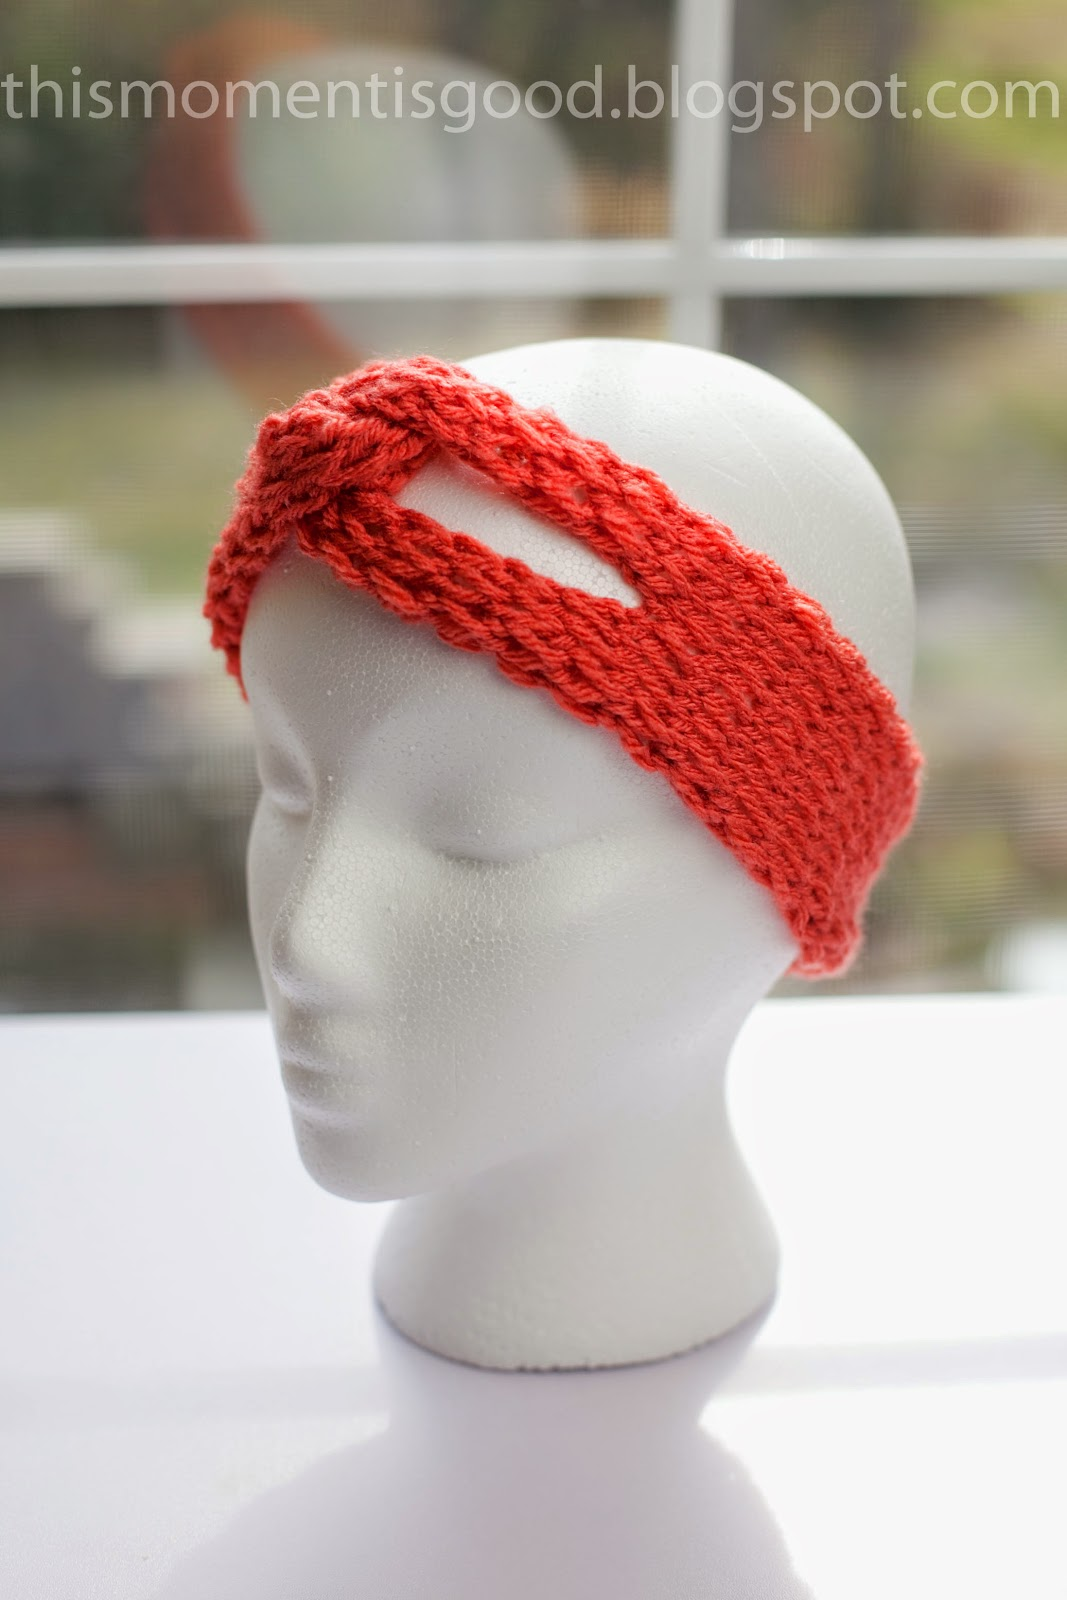 LOOM KNIT TWISTED HEADBAND... | Loom Knitting by This Moment is Good!